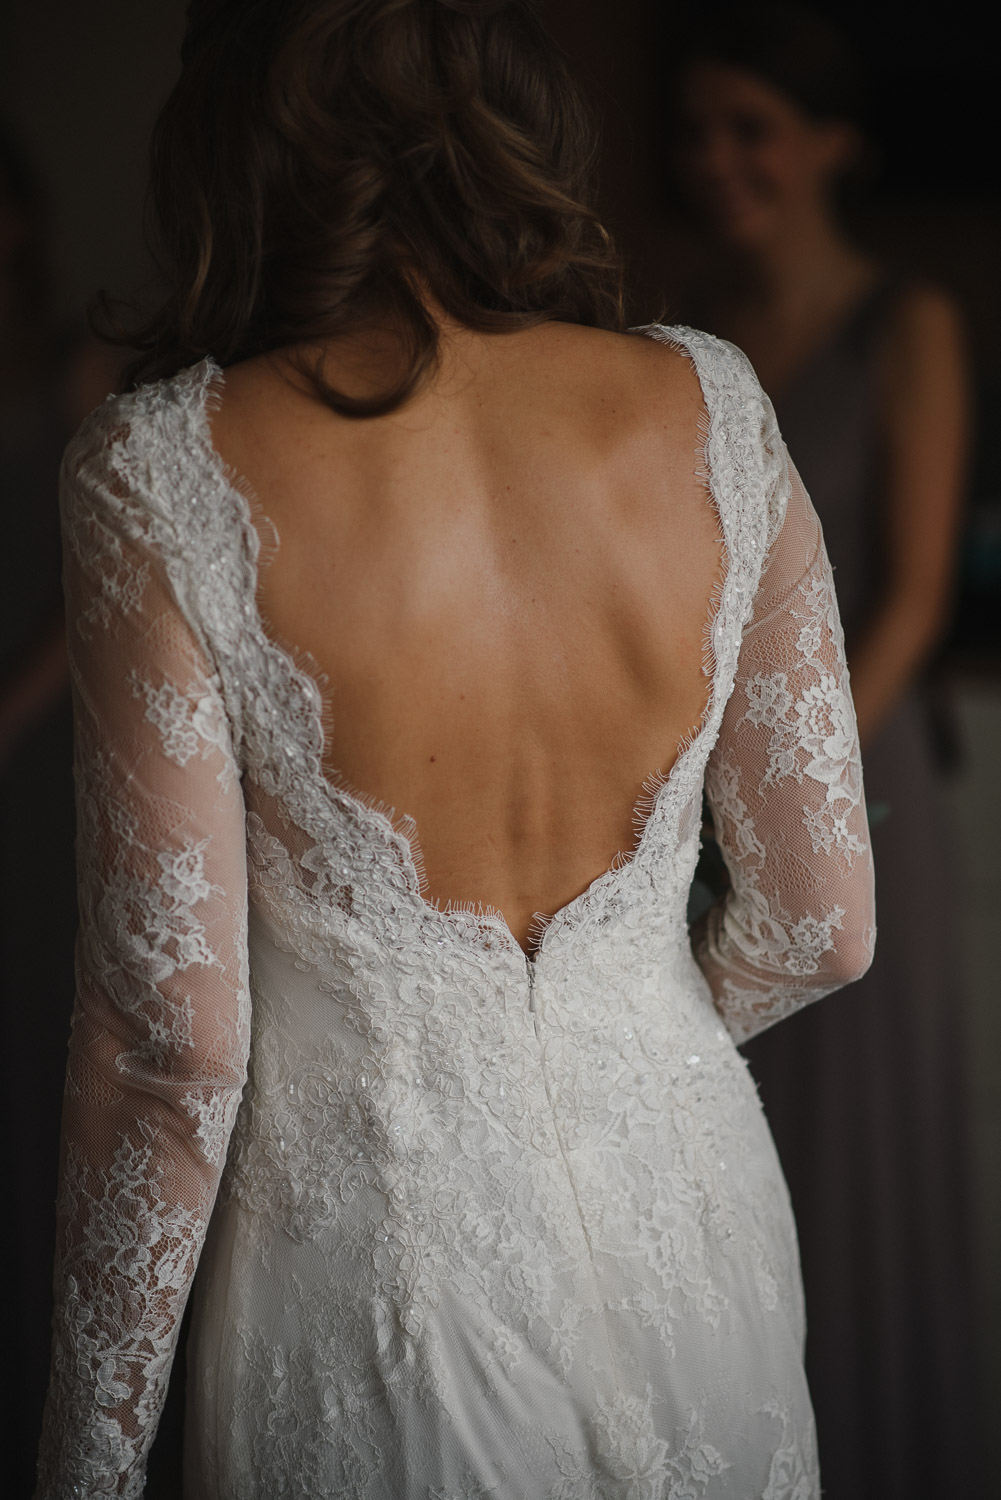 backless lace wedding dress by creative and alternative london wedding photographer the shannons photography